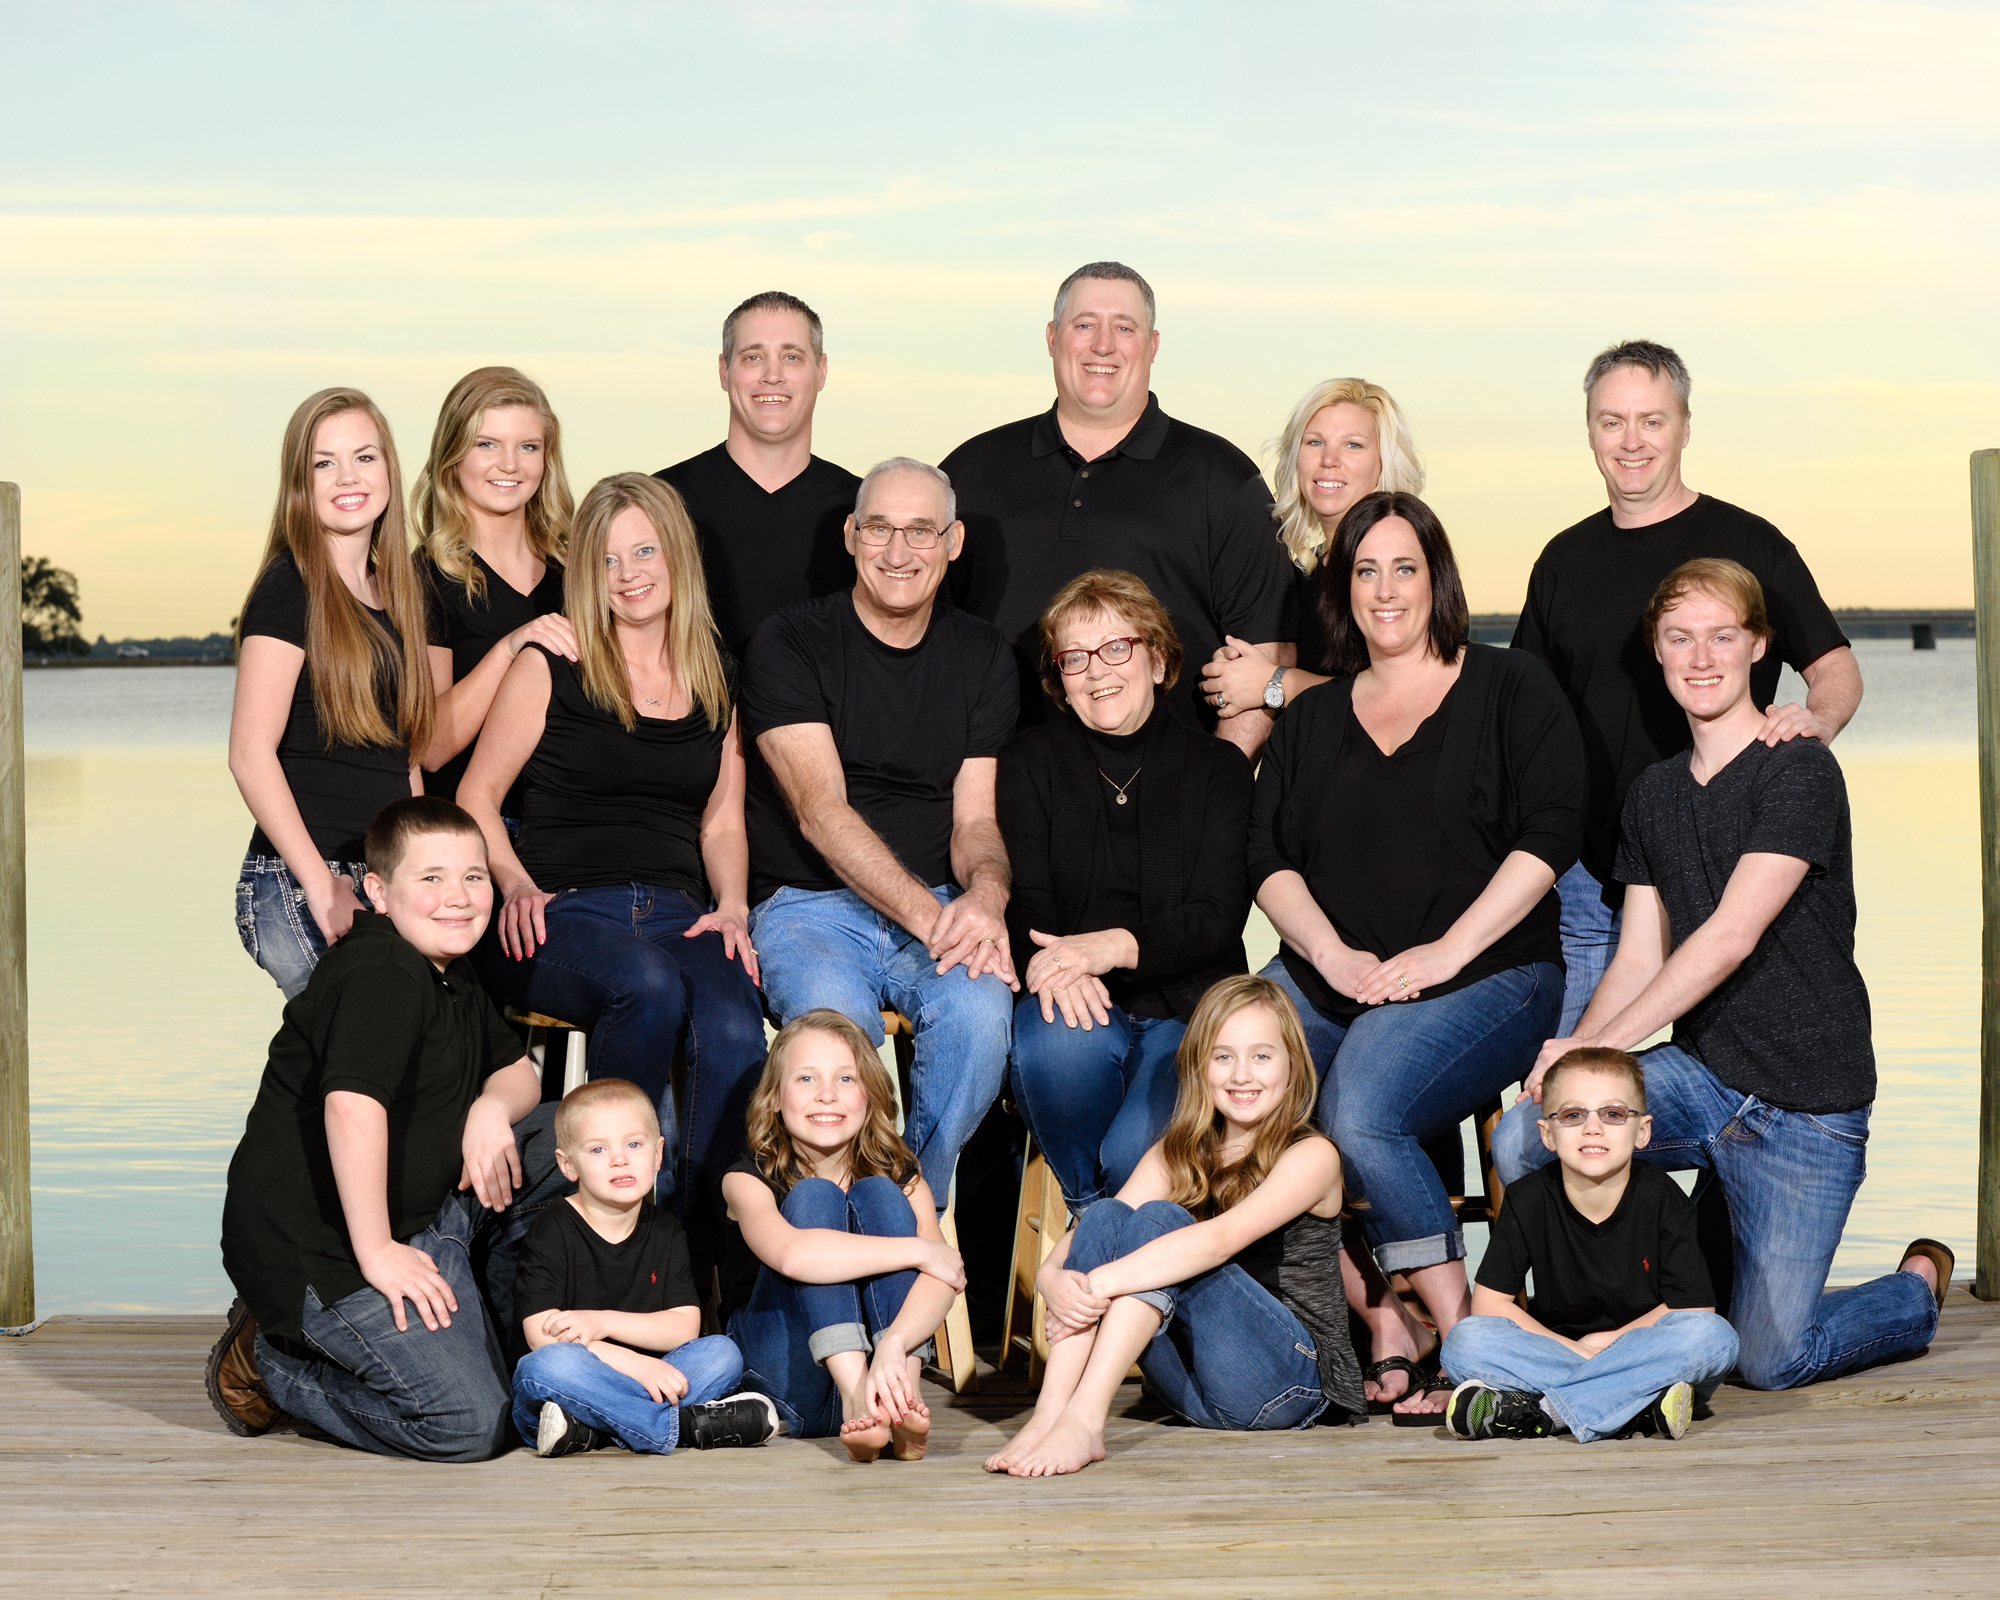 Beautiful family photos by a professional angel navarro photographyangel navarro photography high school senior portraits weddings head shots